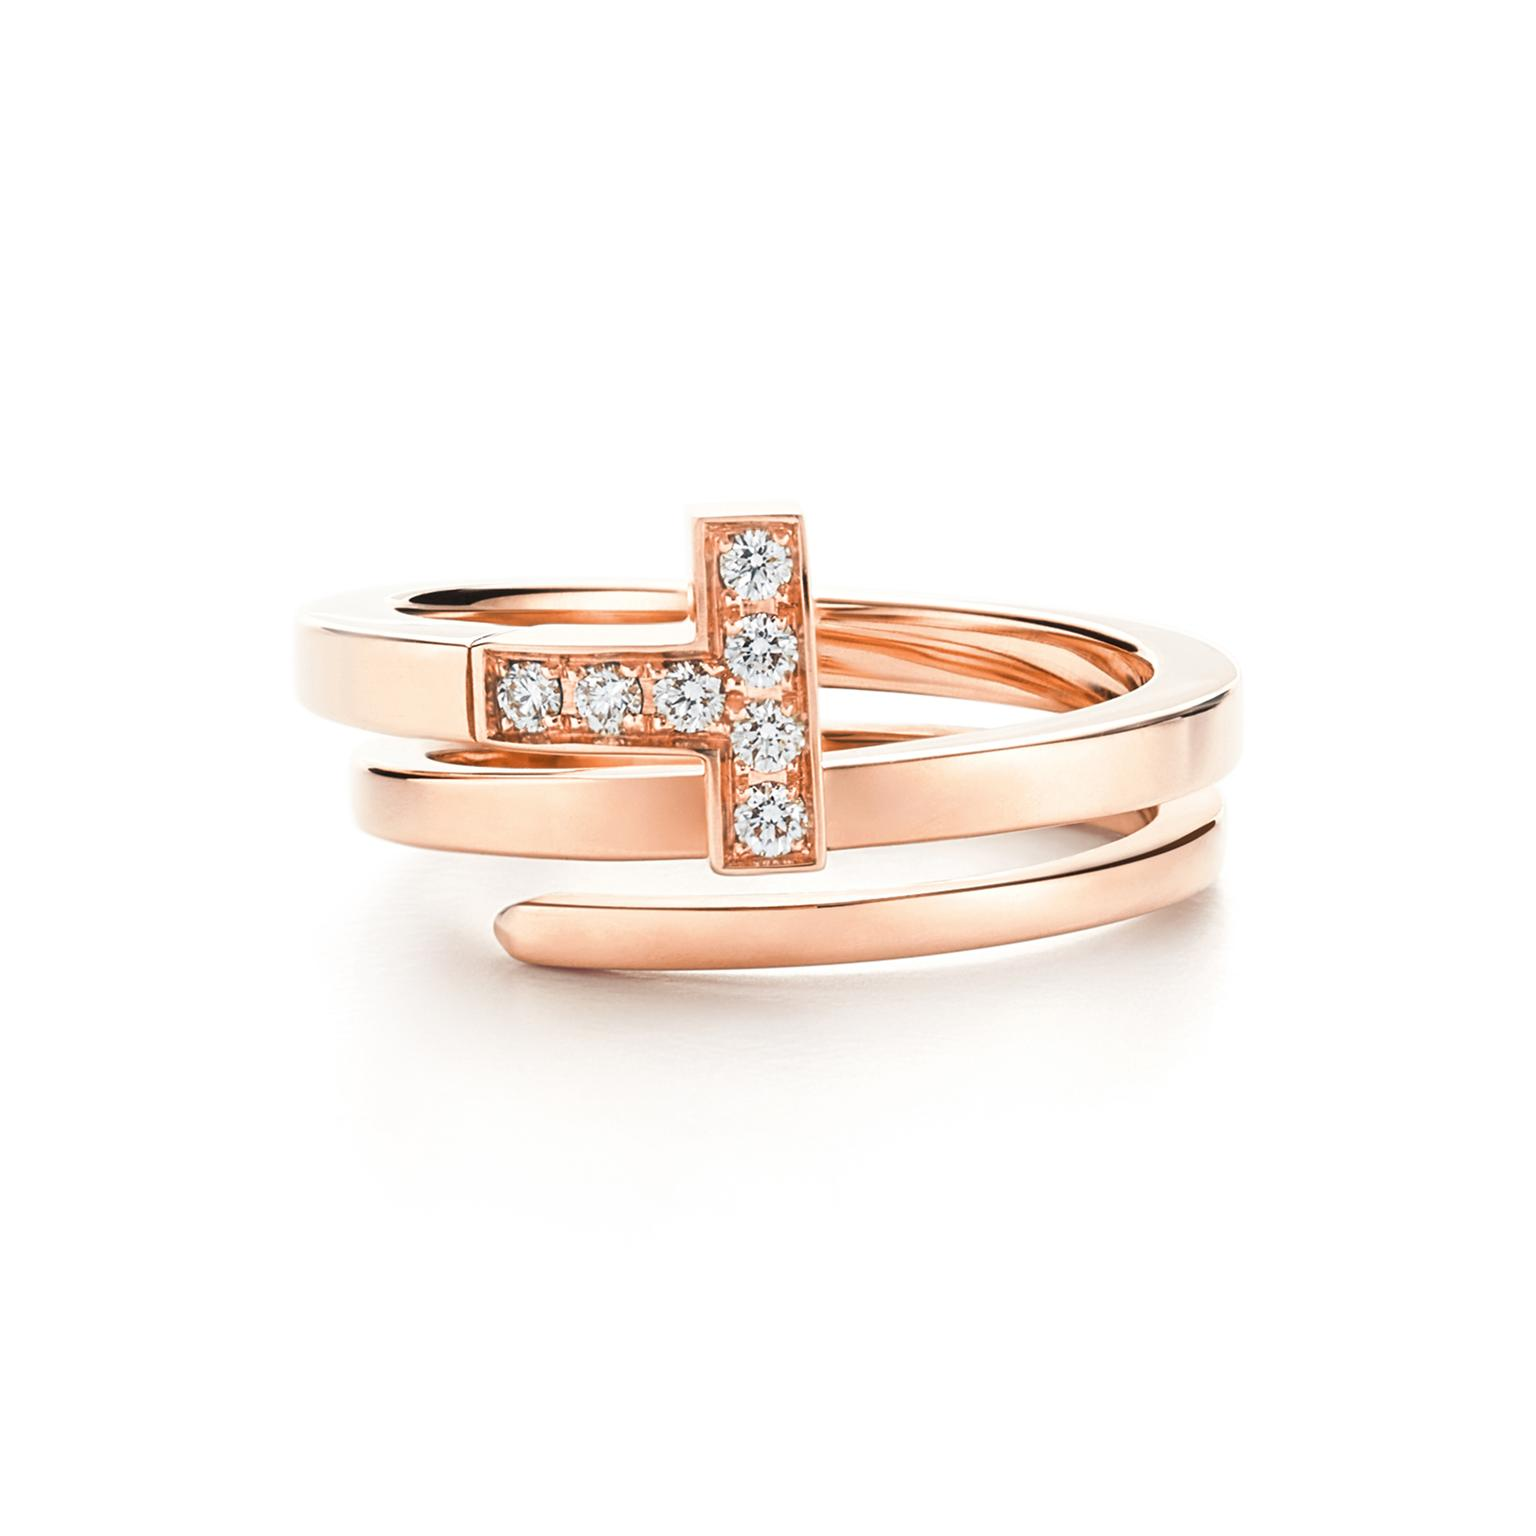 Tiffany T rose gold ring